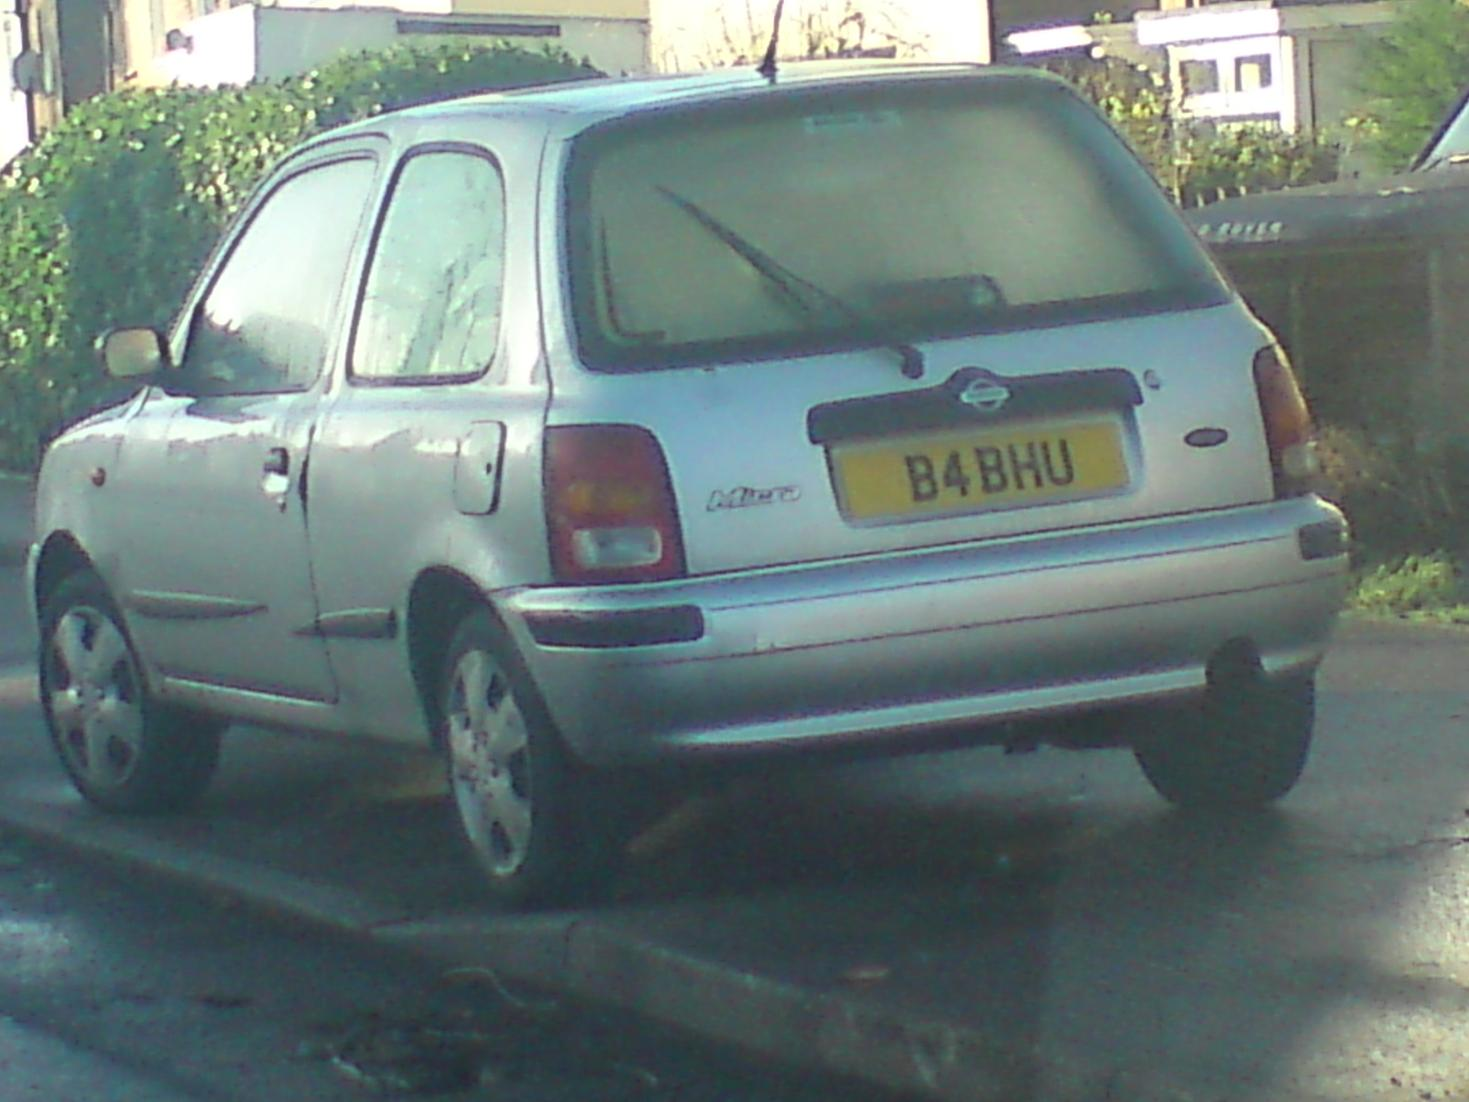 Curious Amp Illegal Number Plates Wedges Bakery